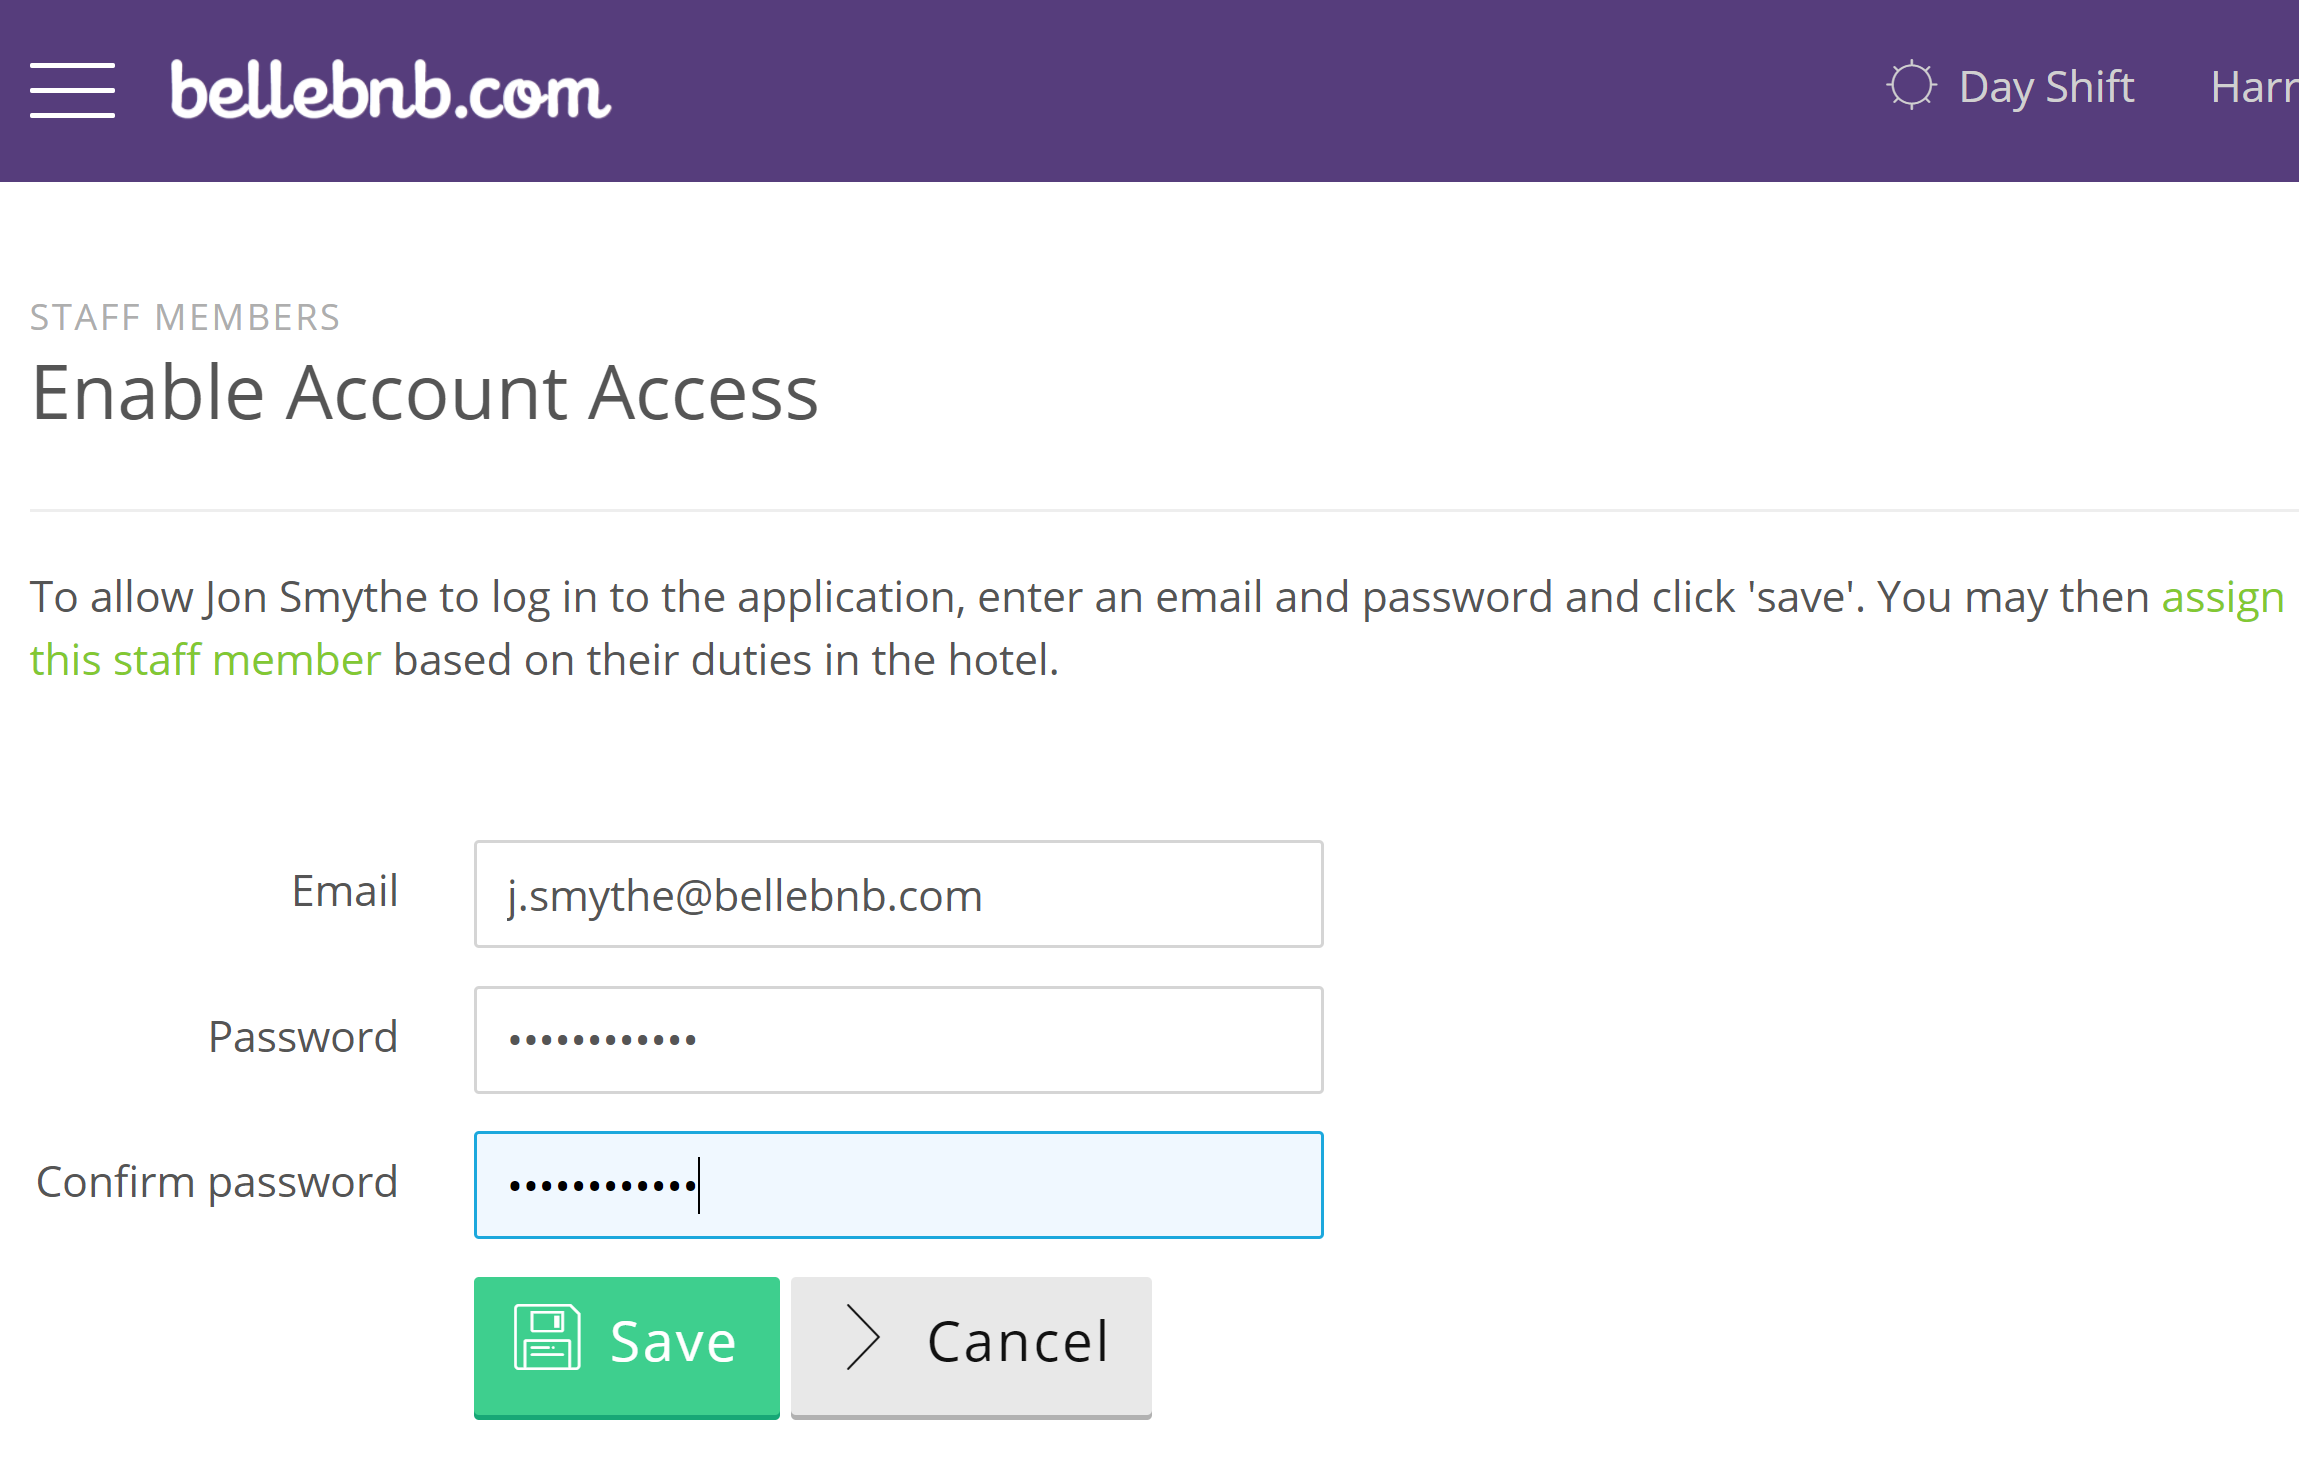 There are three basic types of account users: Account Owner, Property Managers, and Hotel Staff. There is one Account Owner per Bellebnb.com account. This is the user that opened the account. Account Owner status cannot be assigned, transferred, or shared. The account owner has full access to every part of the system for every hotel.